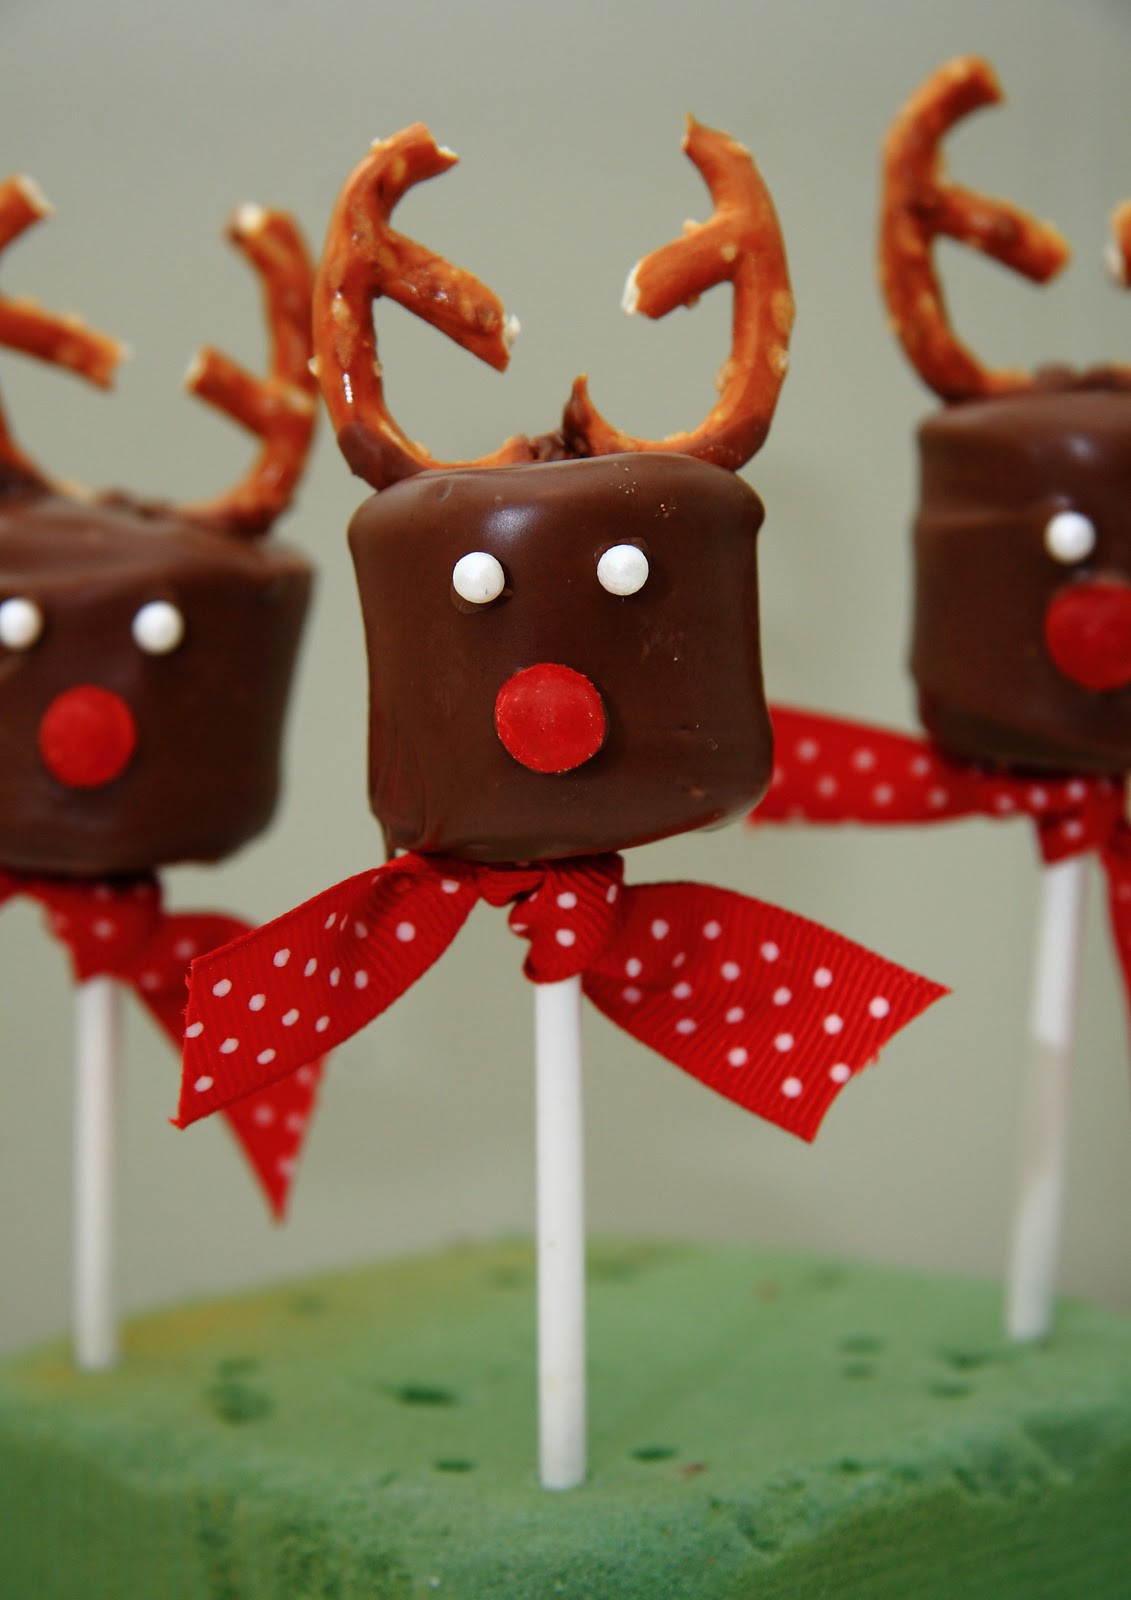 Youth Christmas Party Ideas  21 Amazing Christmas Party Ideas for Kids